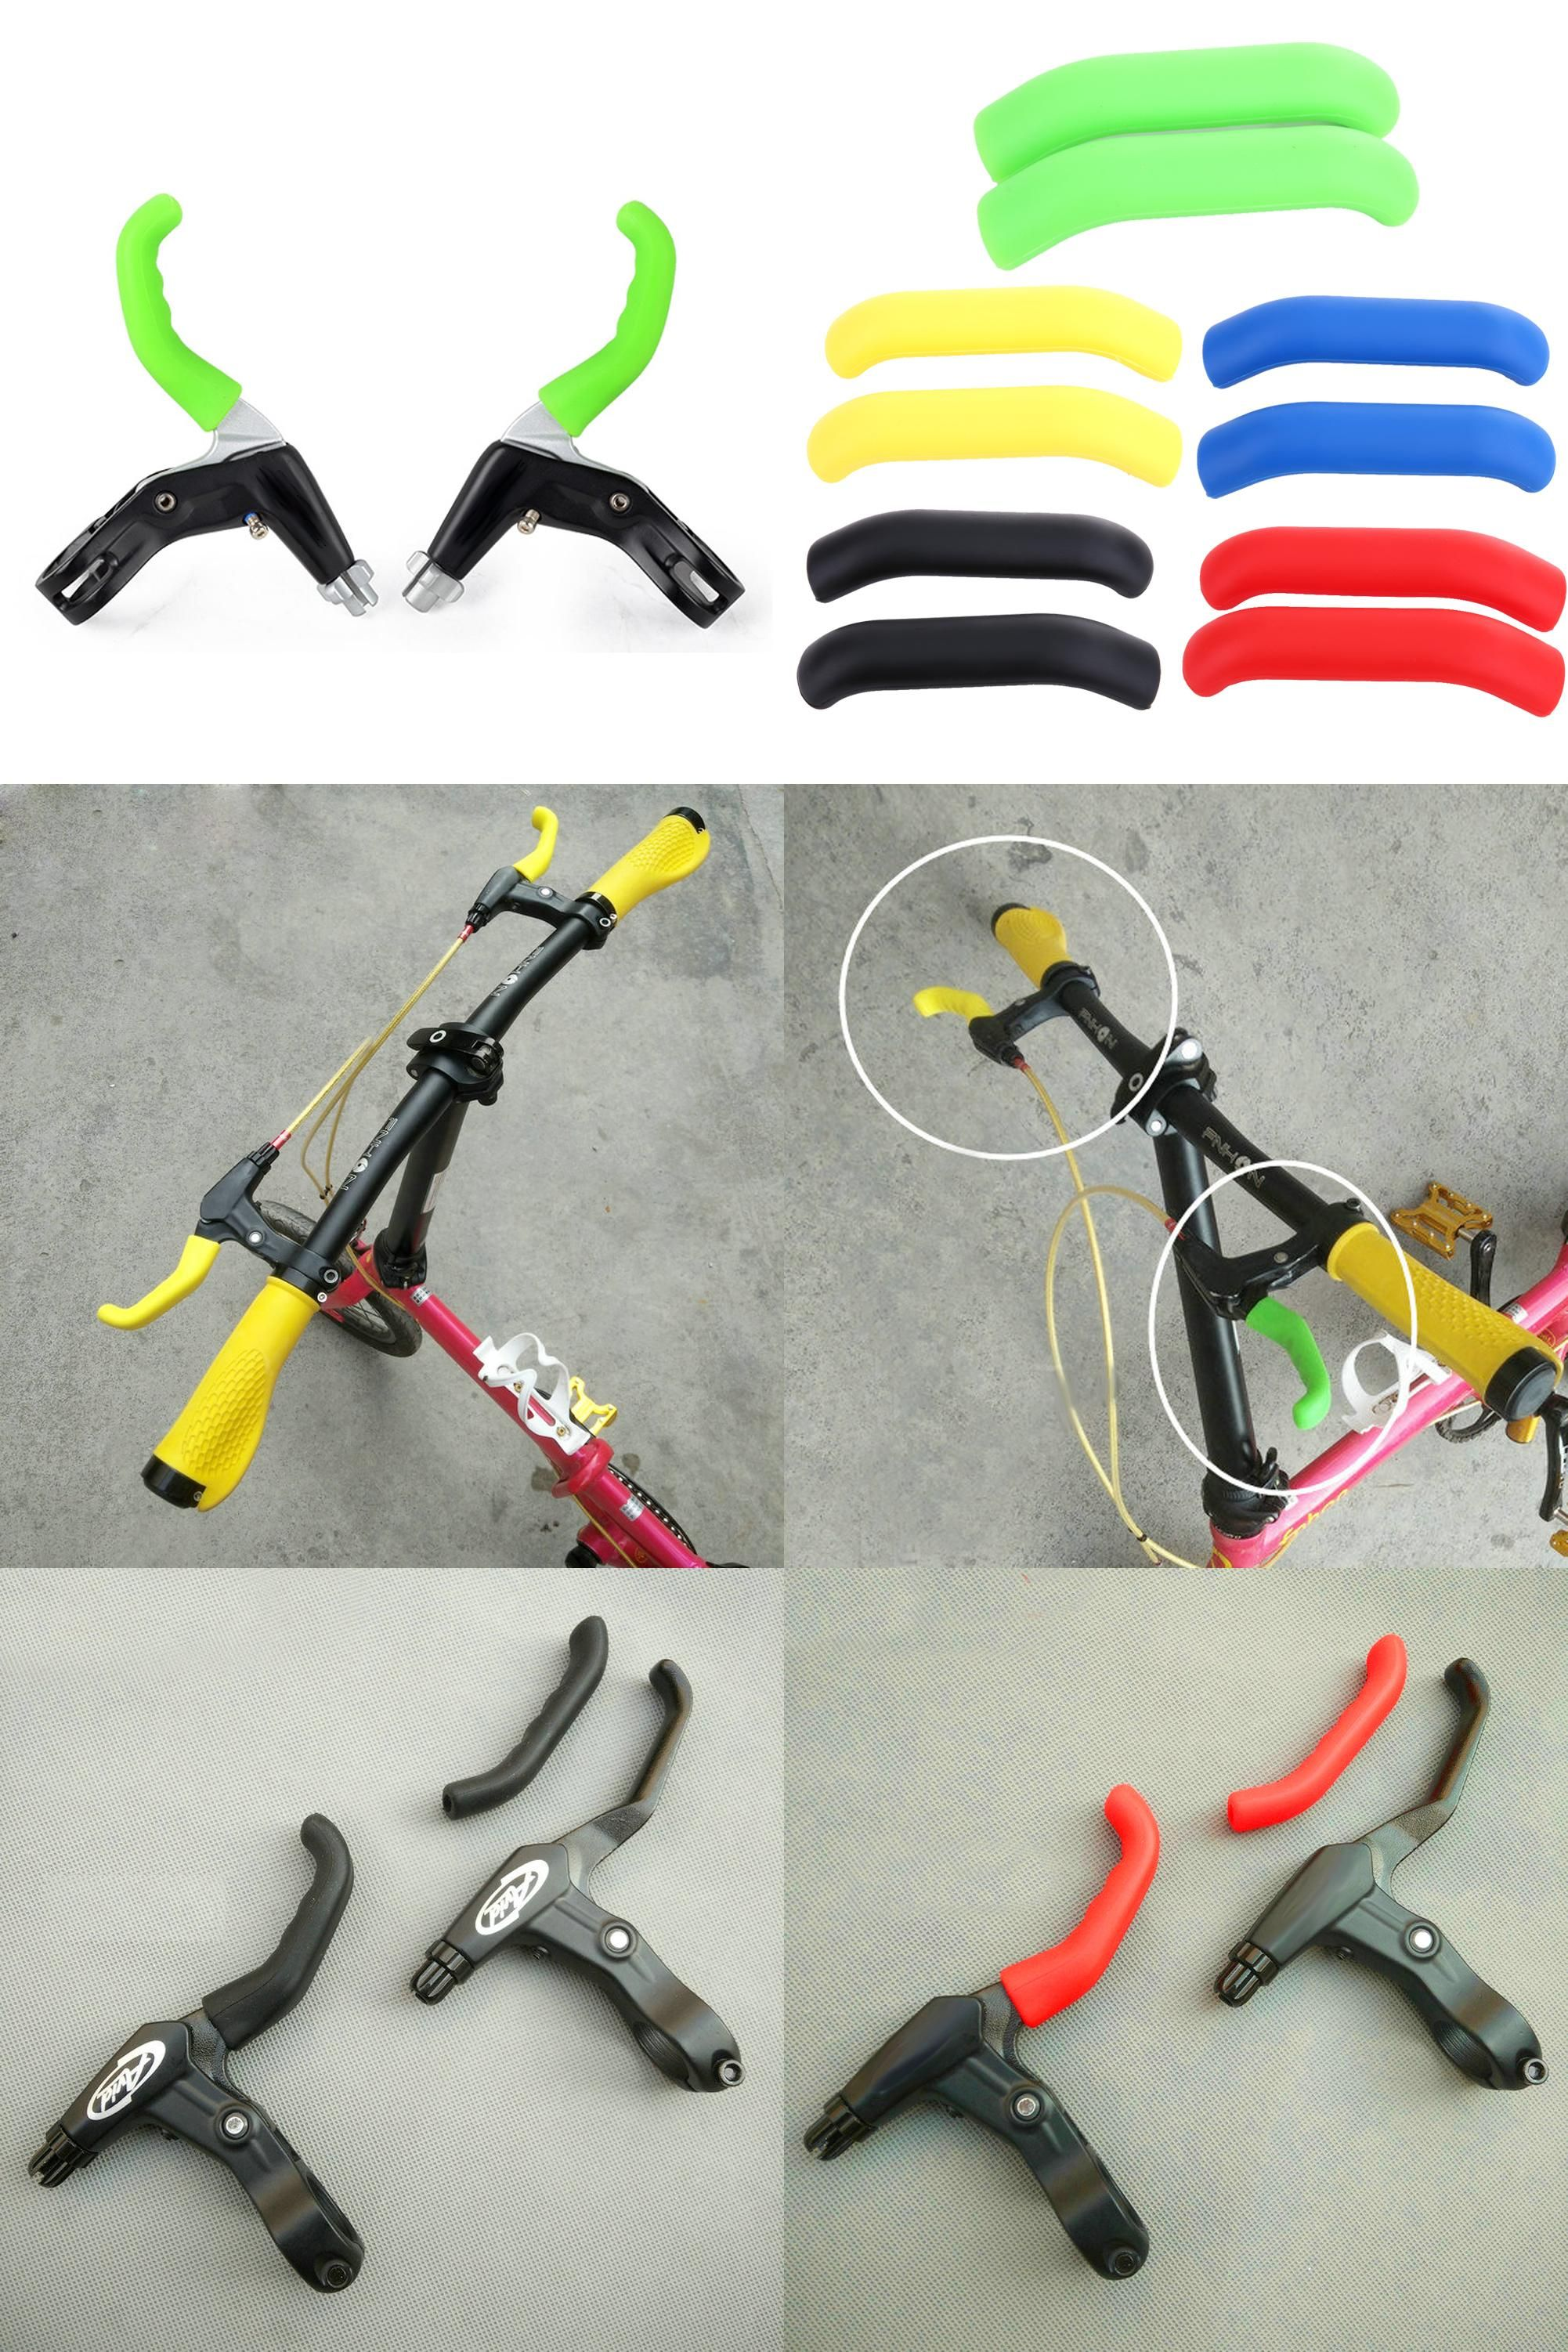 Mantain Bicycle Brake Levers Sleeve Silicone Gel Anti-Slip Brake Handle Protection Cover 1 Pair